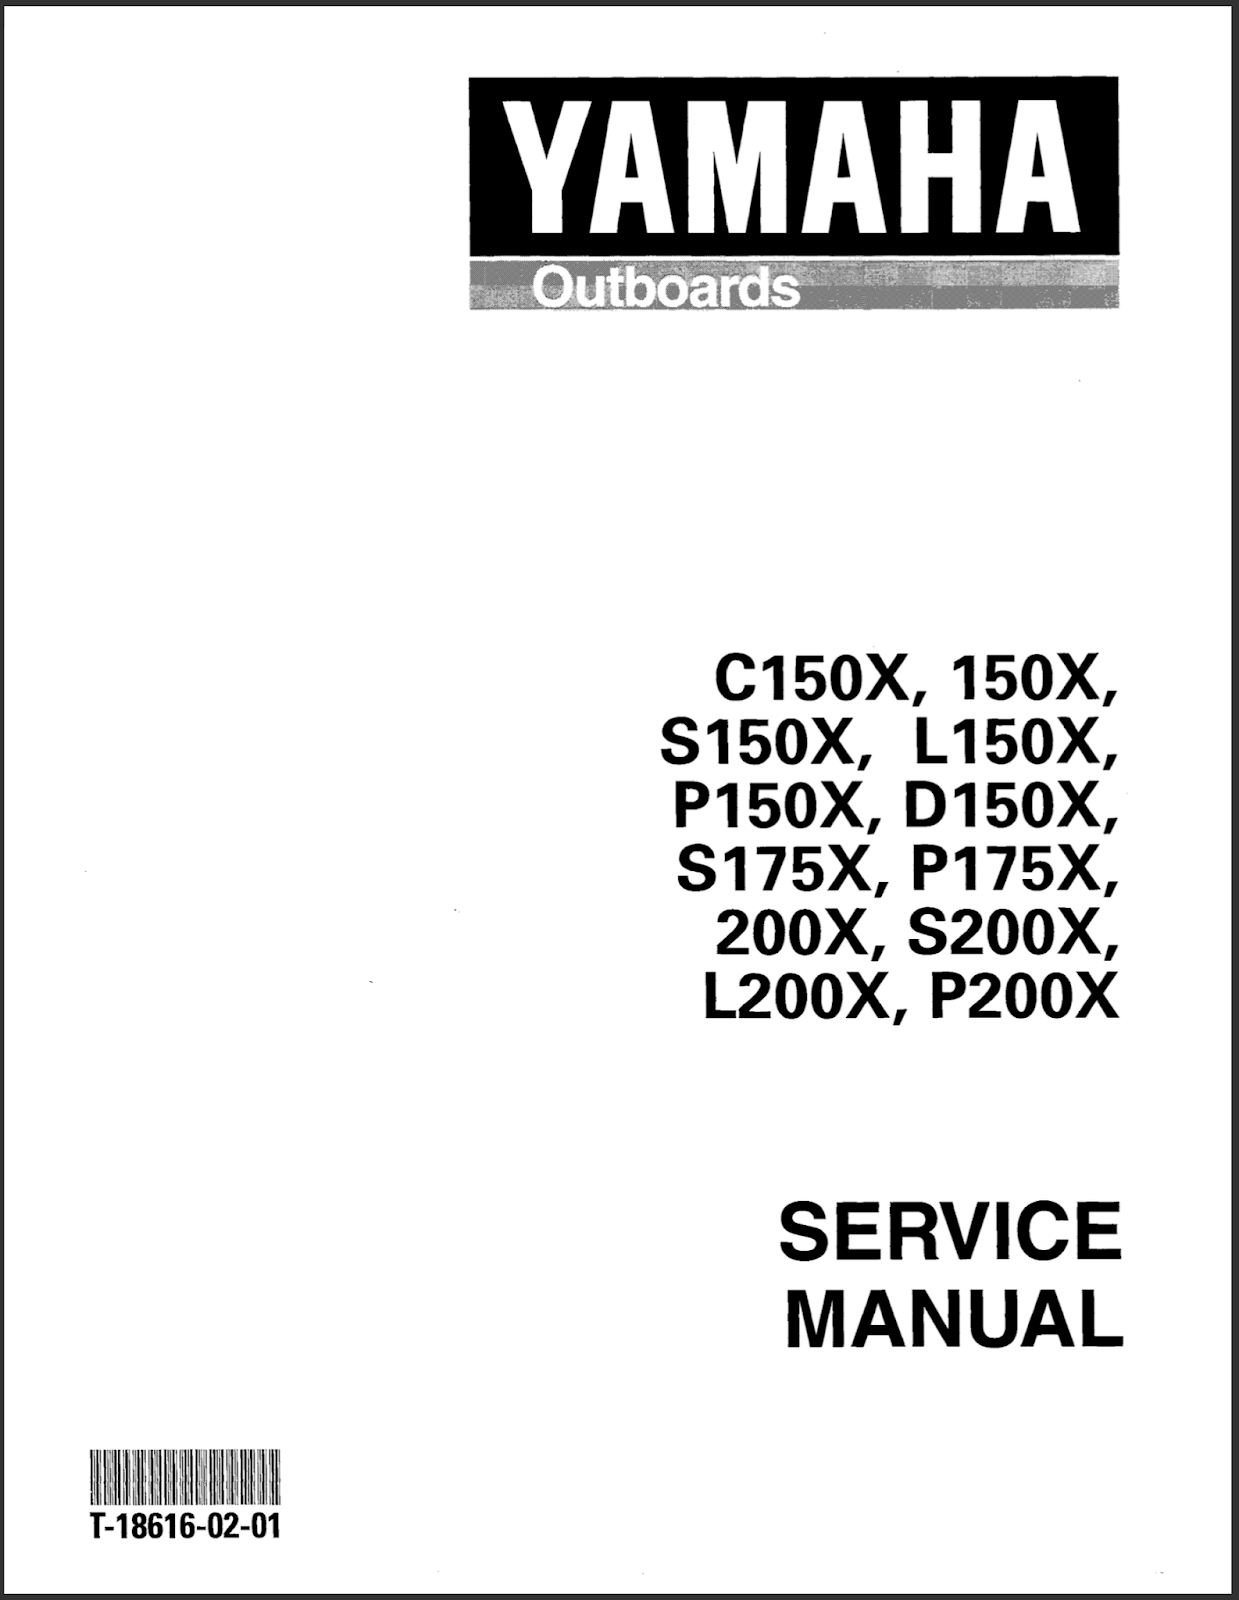 Yamaha Outboard Service Manual: DOWNLOAD Yamaha 175TXRY